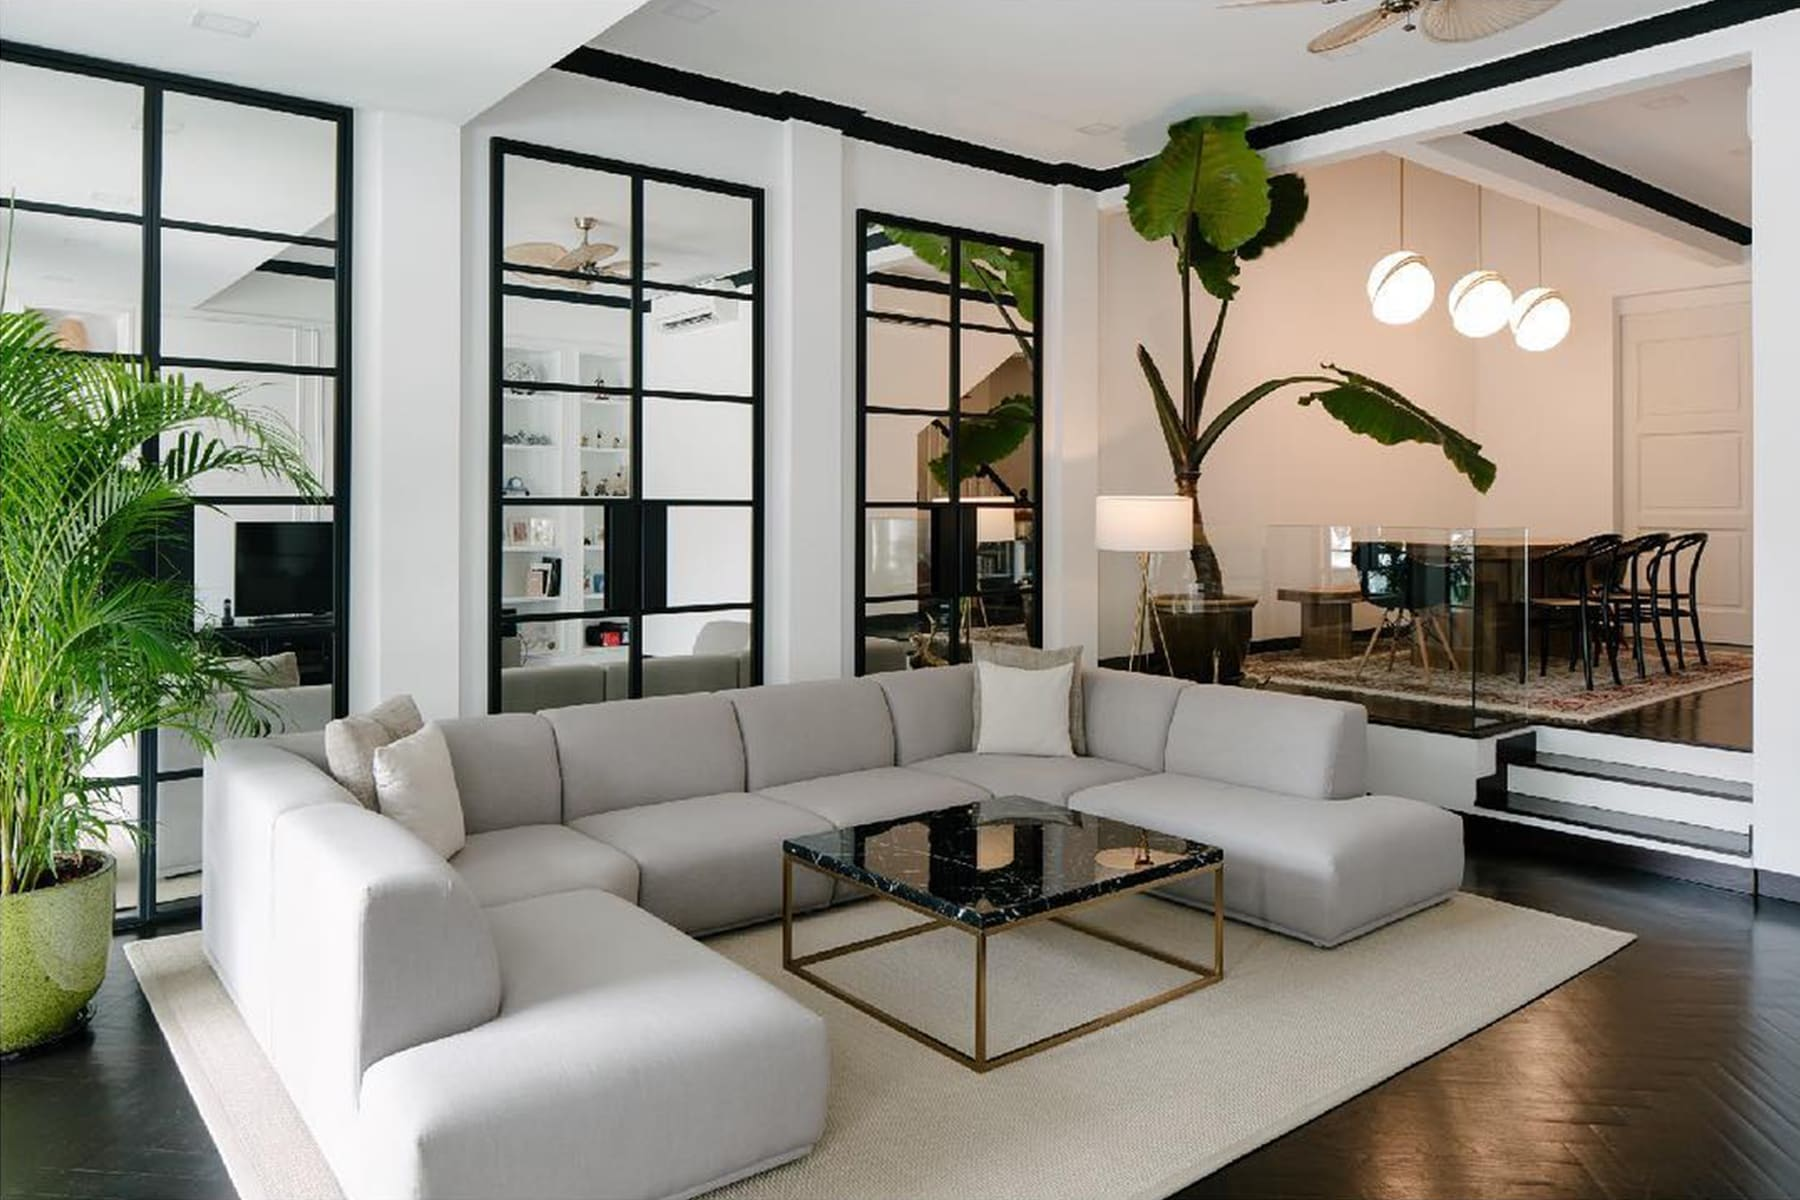 living room furniture with sectional sofa, marble coffee table, lights and plants